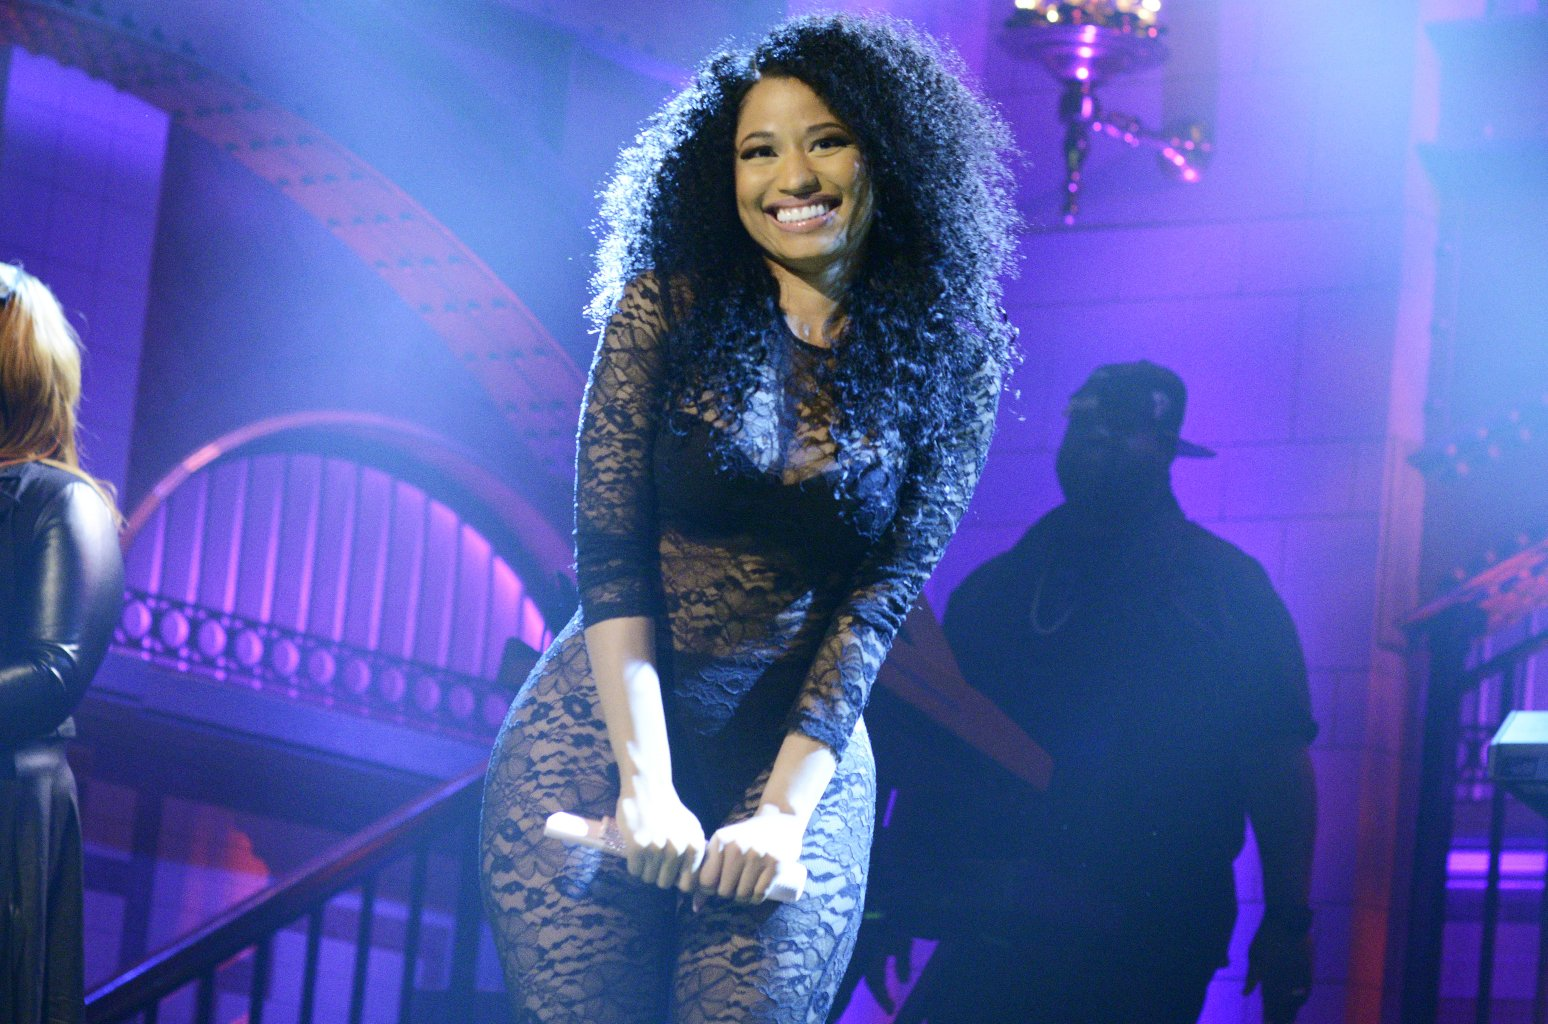 5 things we want to see from @NickiMinaj on #SNL https://t.co/Lb4RZ6CceP https://t.co/sFdQVUlBHW